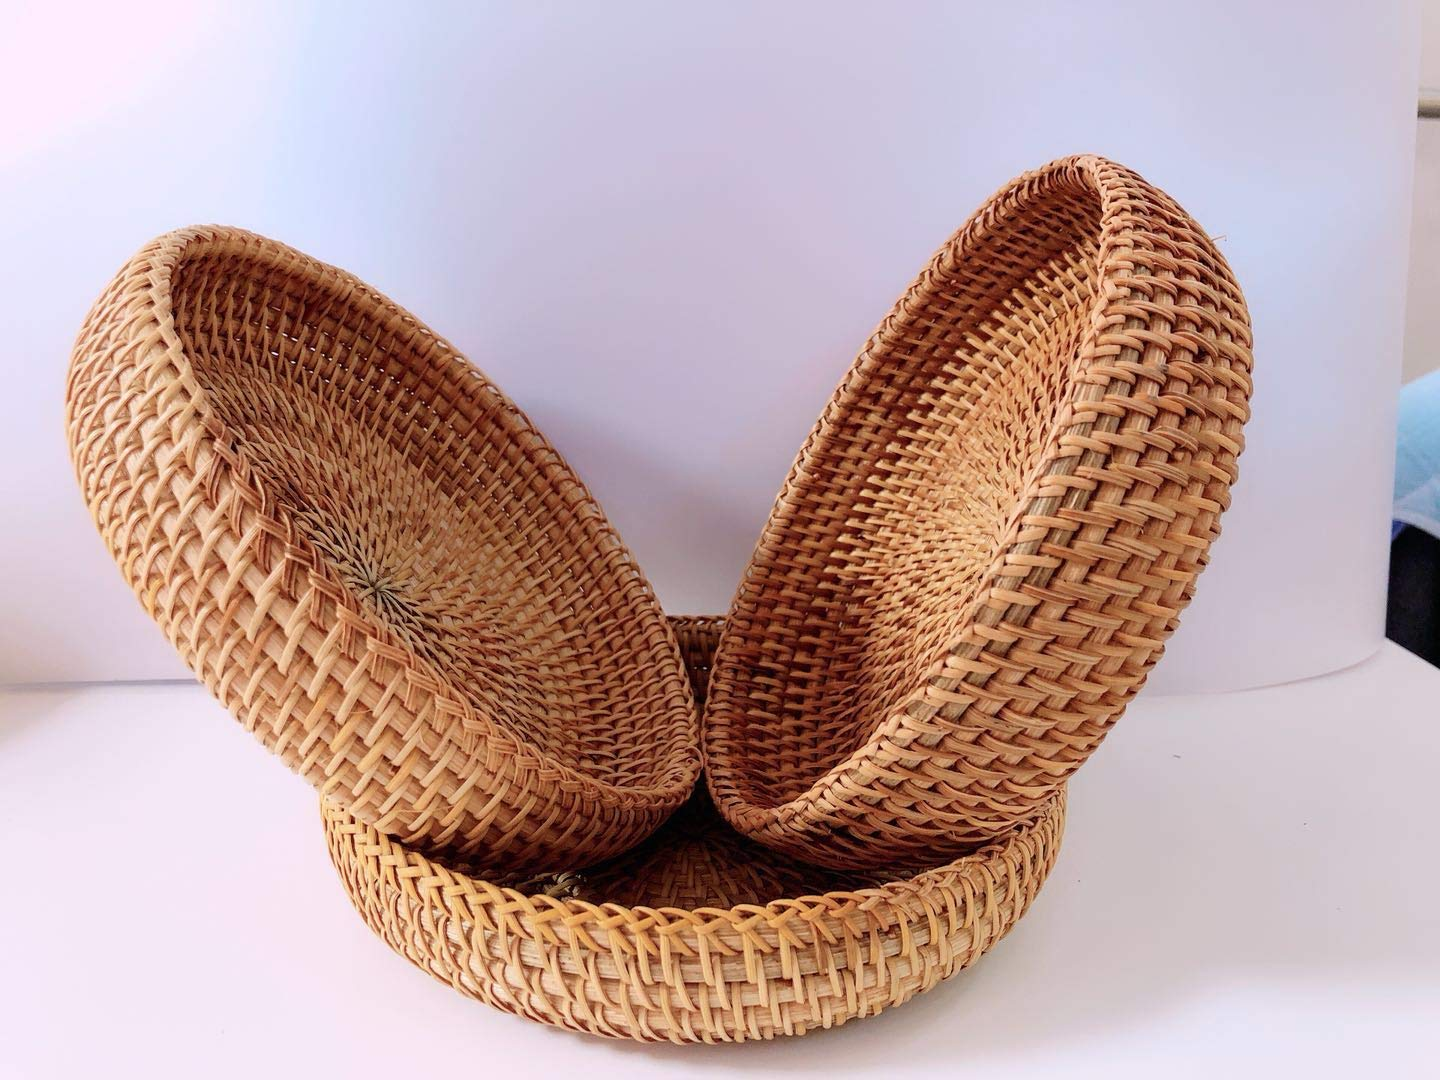 Rattan Basket Dried Fruit Basket Woven Basket Basket For Gifts Fruit Baskets Wicker Picnic Basket Wicker Basket Candy Basket 2019 Organizer Shallow Basket Gift Baskets For Women (2PCs wicker basekt) by TIMESFRIEND (Image #7)